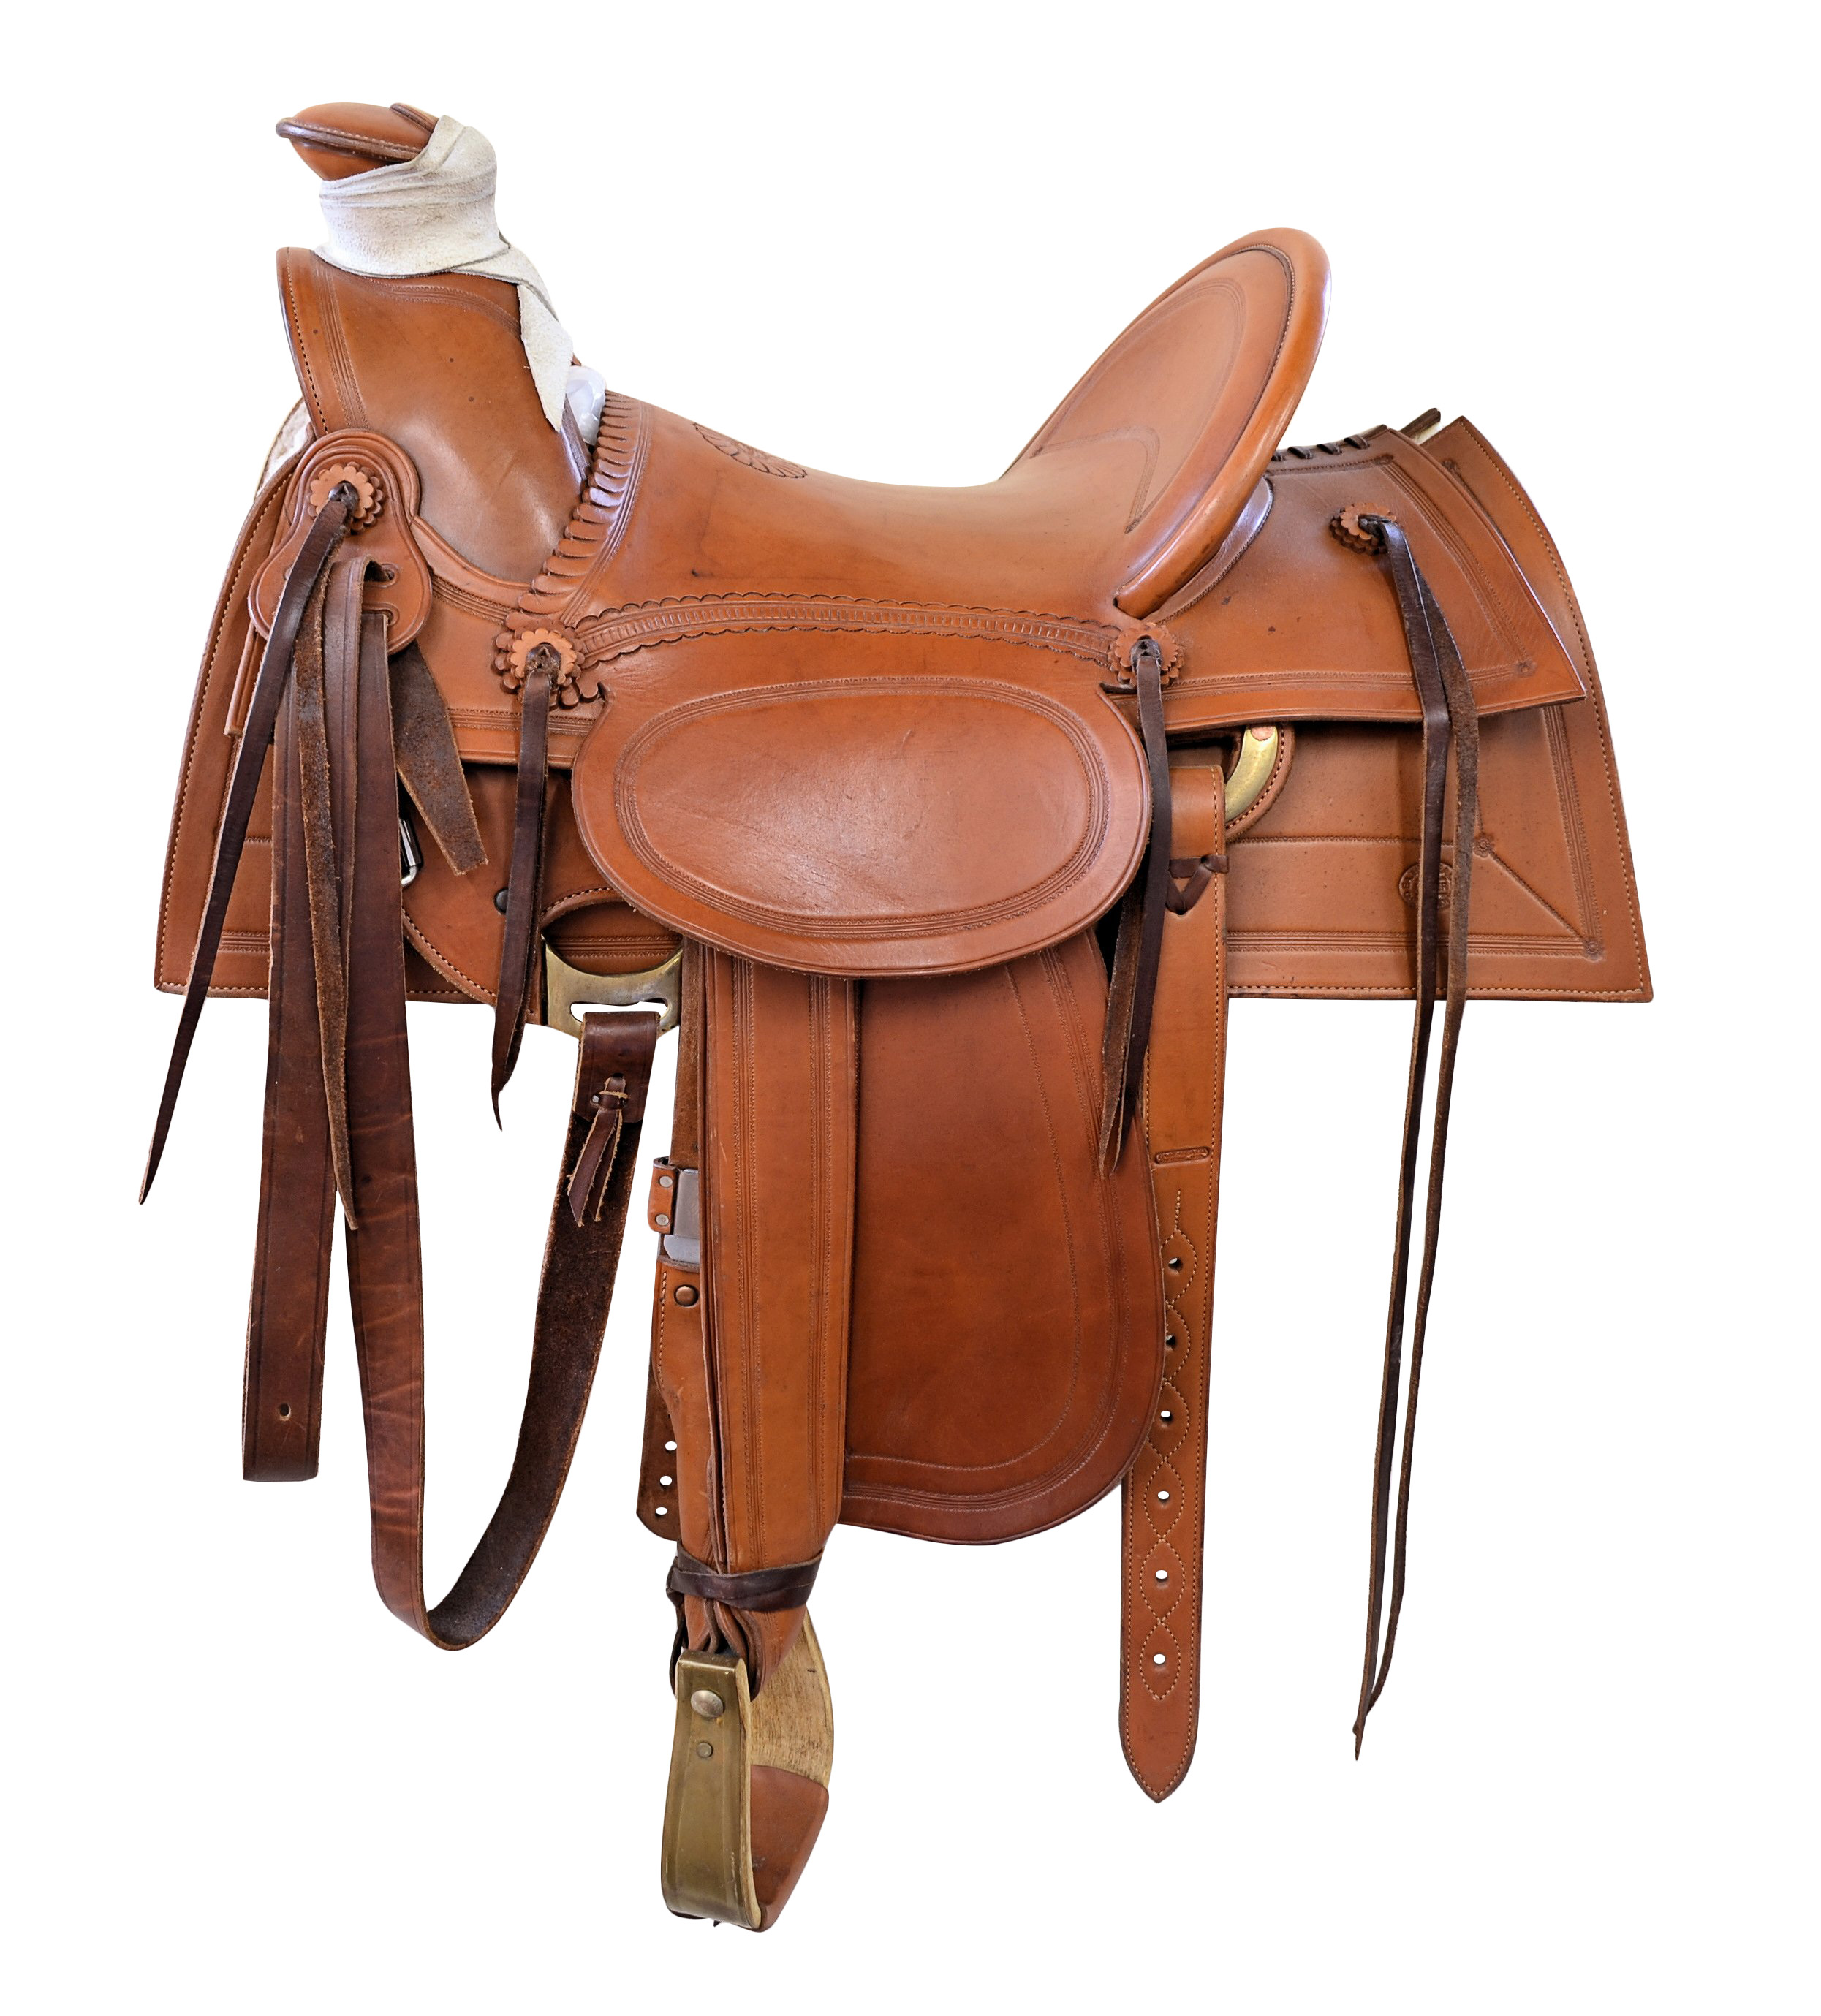 EA Meanea Roping Saddle - Cheyenne WY - Hard Seat